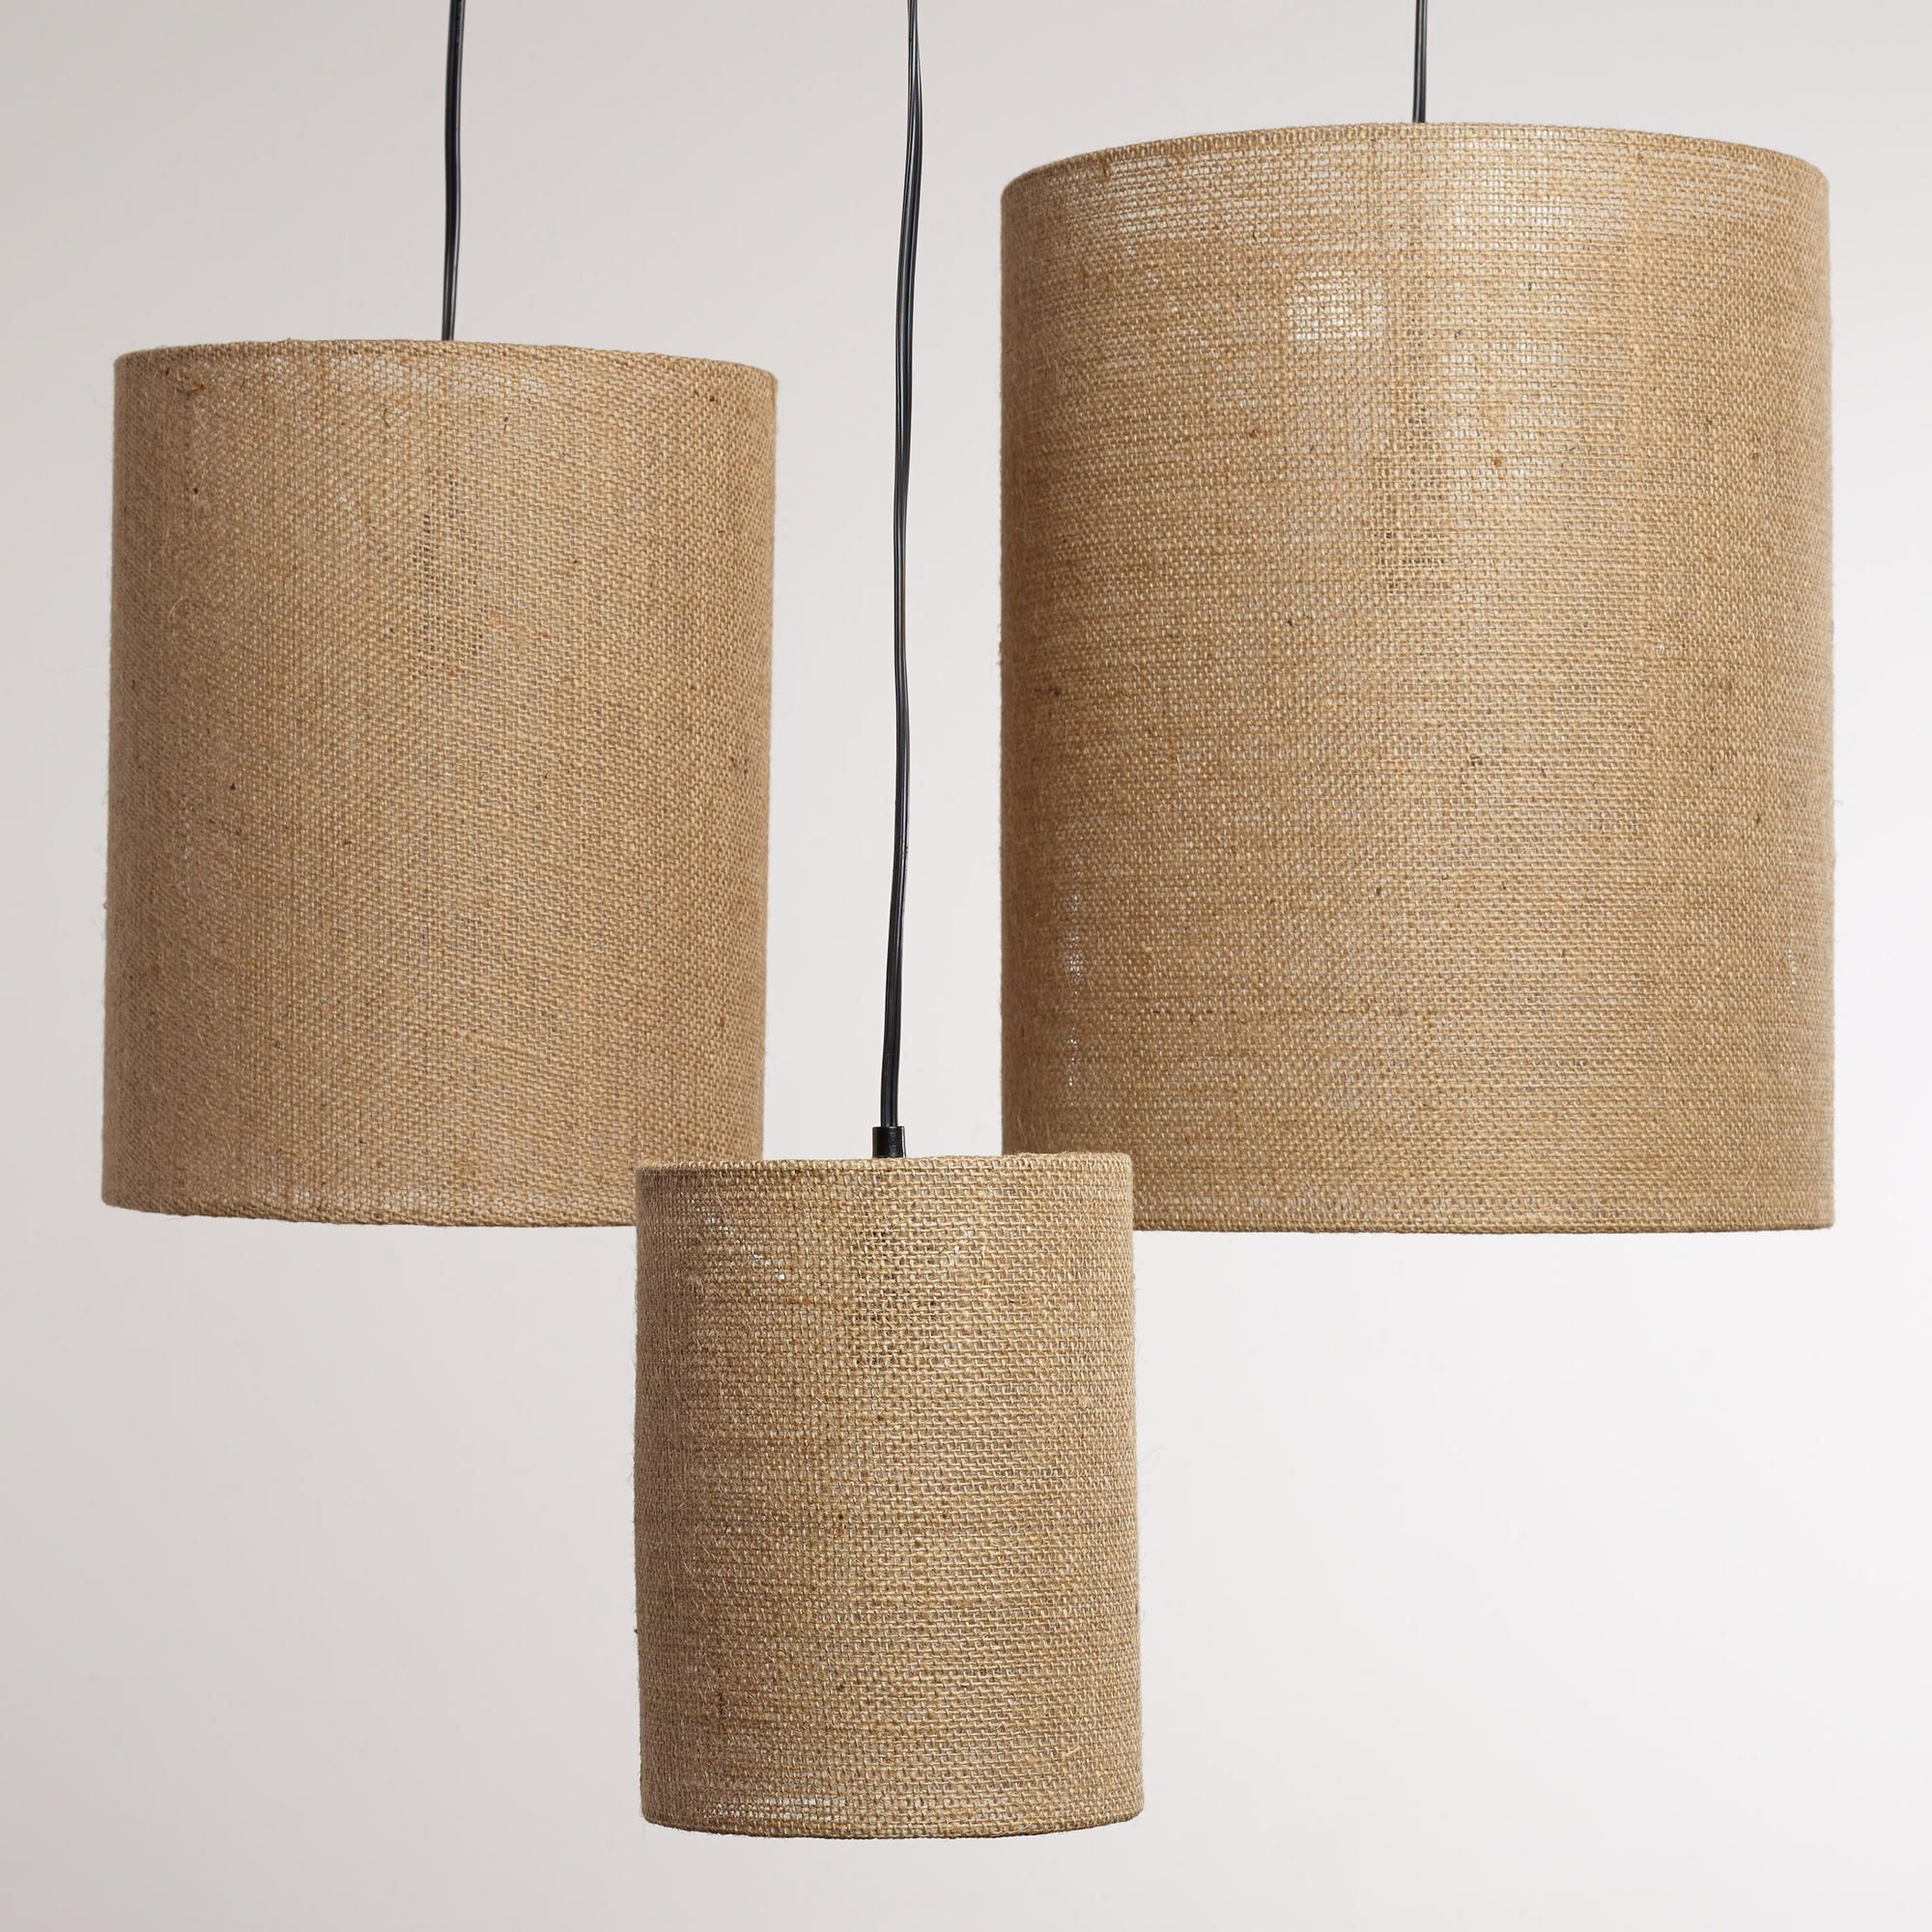 5999 irving burlap lamp shades set of 3 world market lighting 5999 irving burlap lamp shades set of 3 world market arubaitofo Images